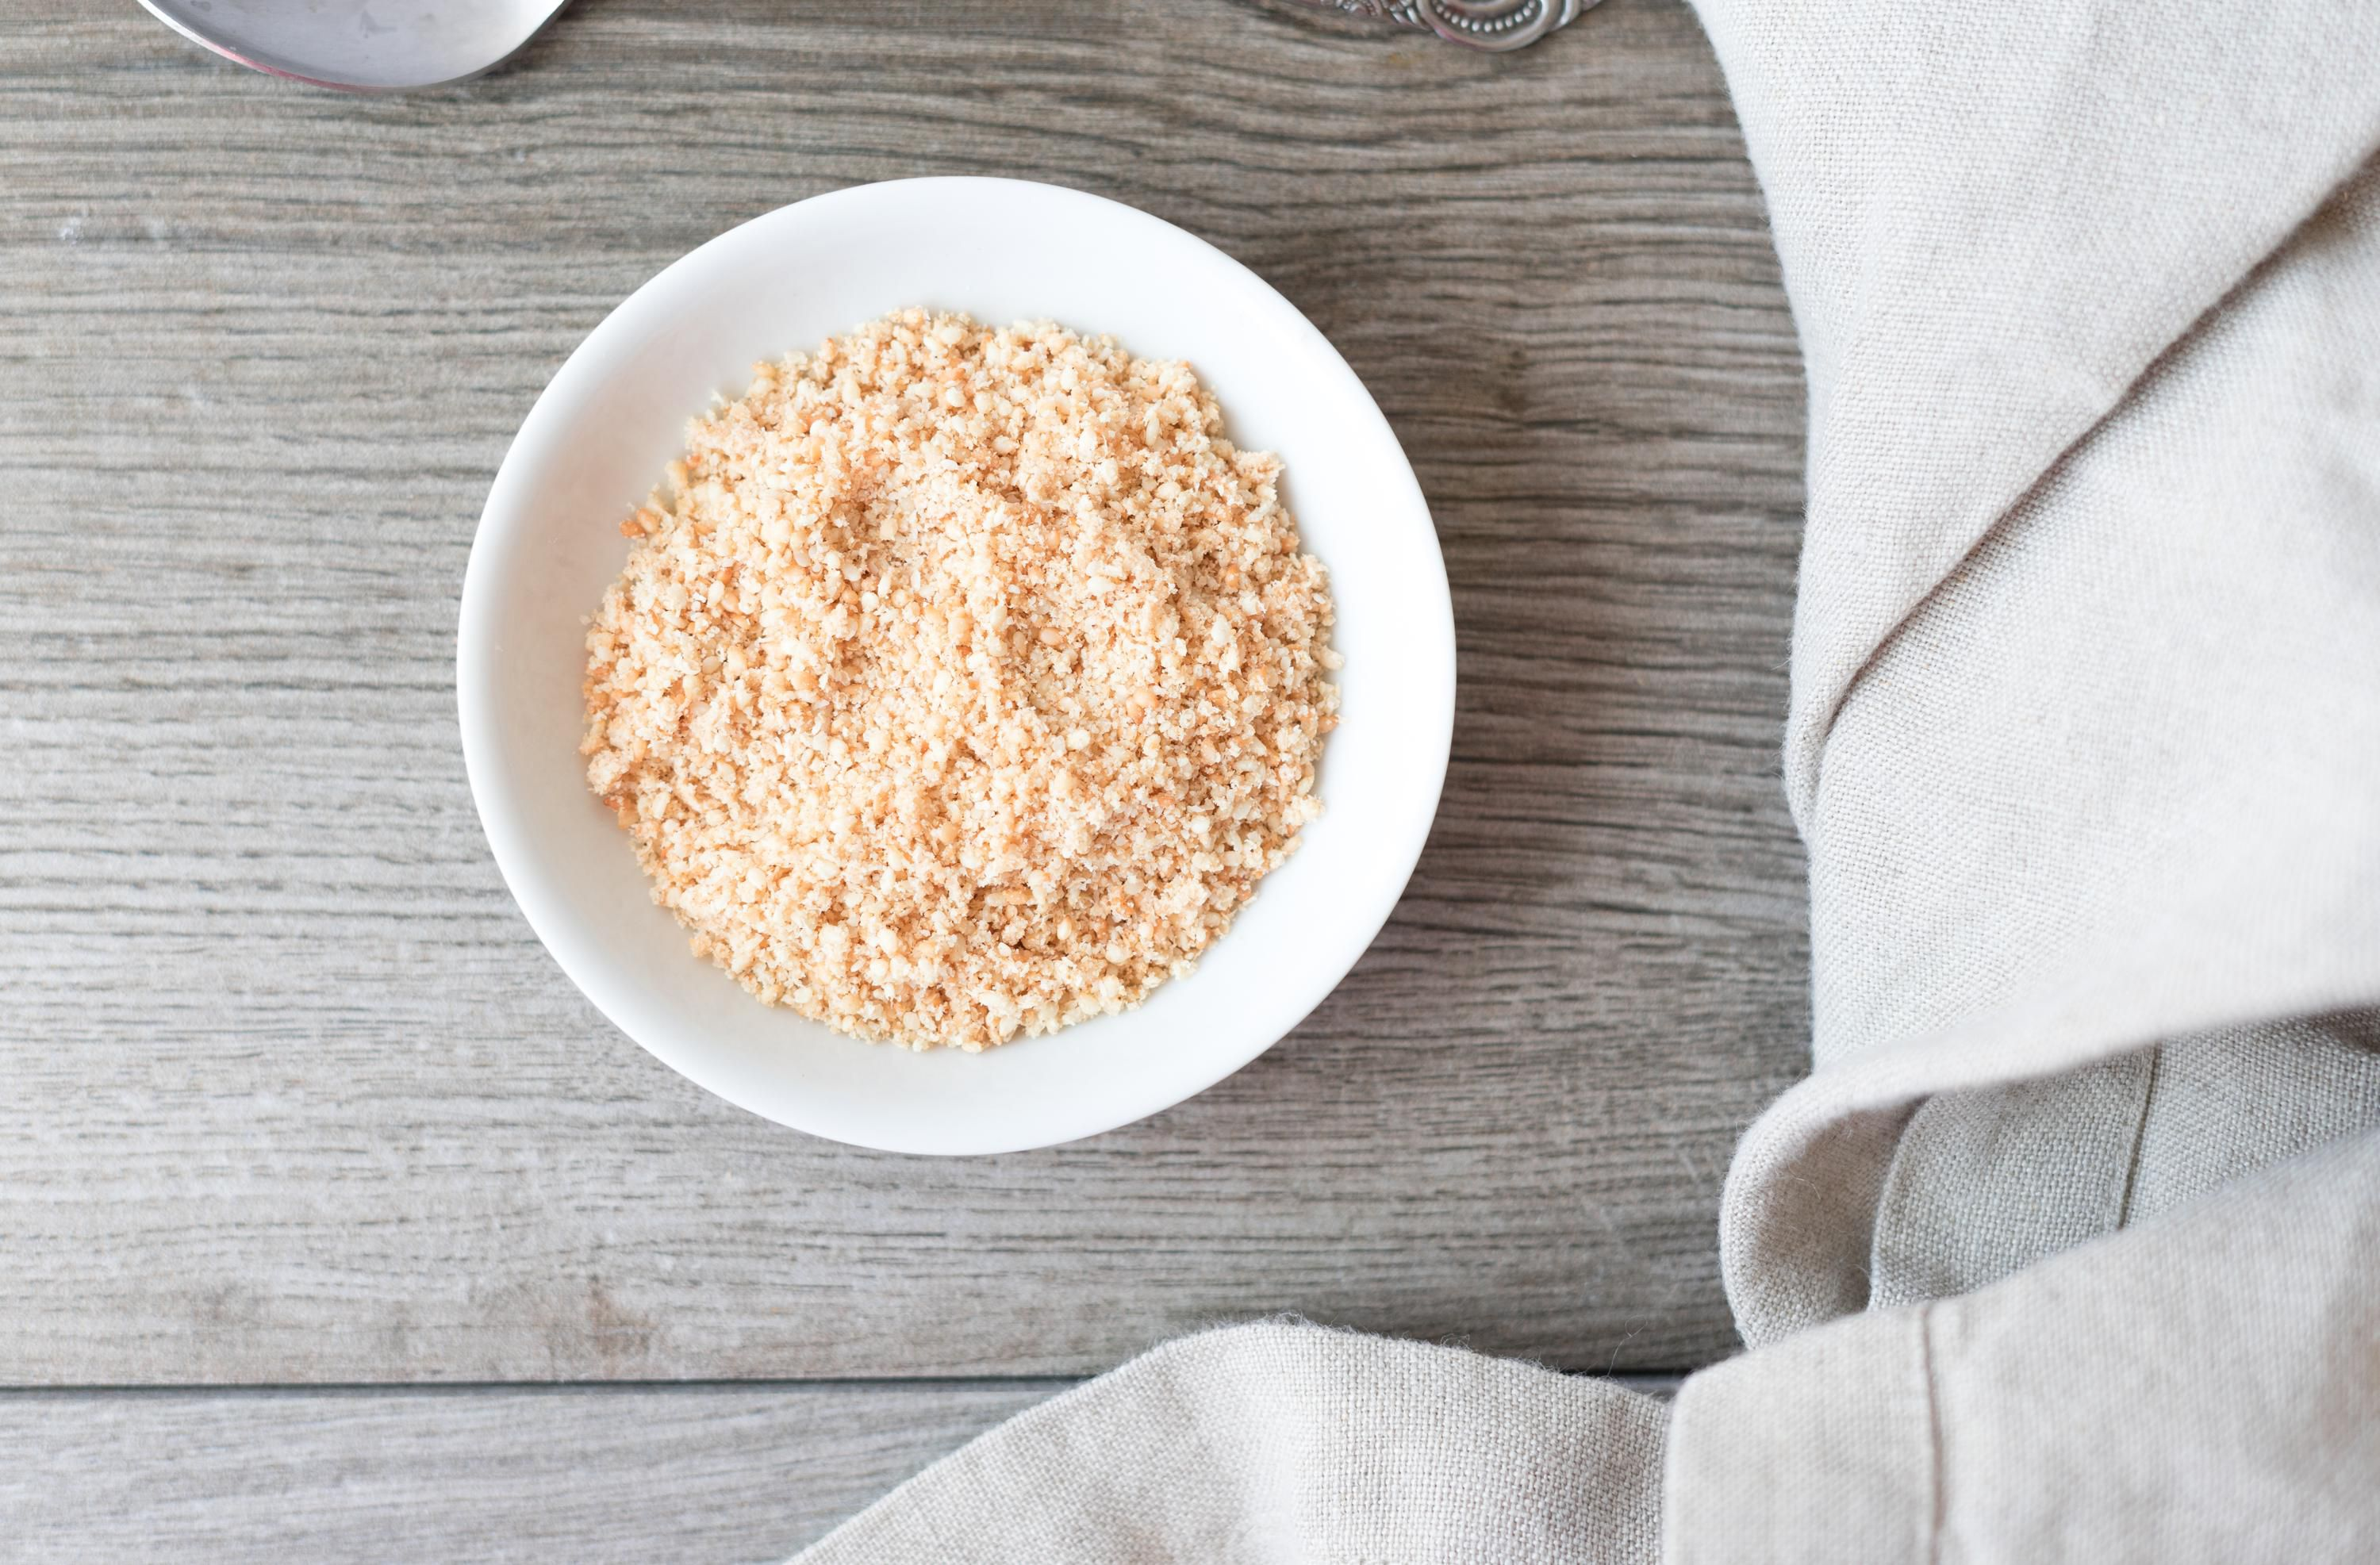 Ground and toasted sesame seeds